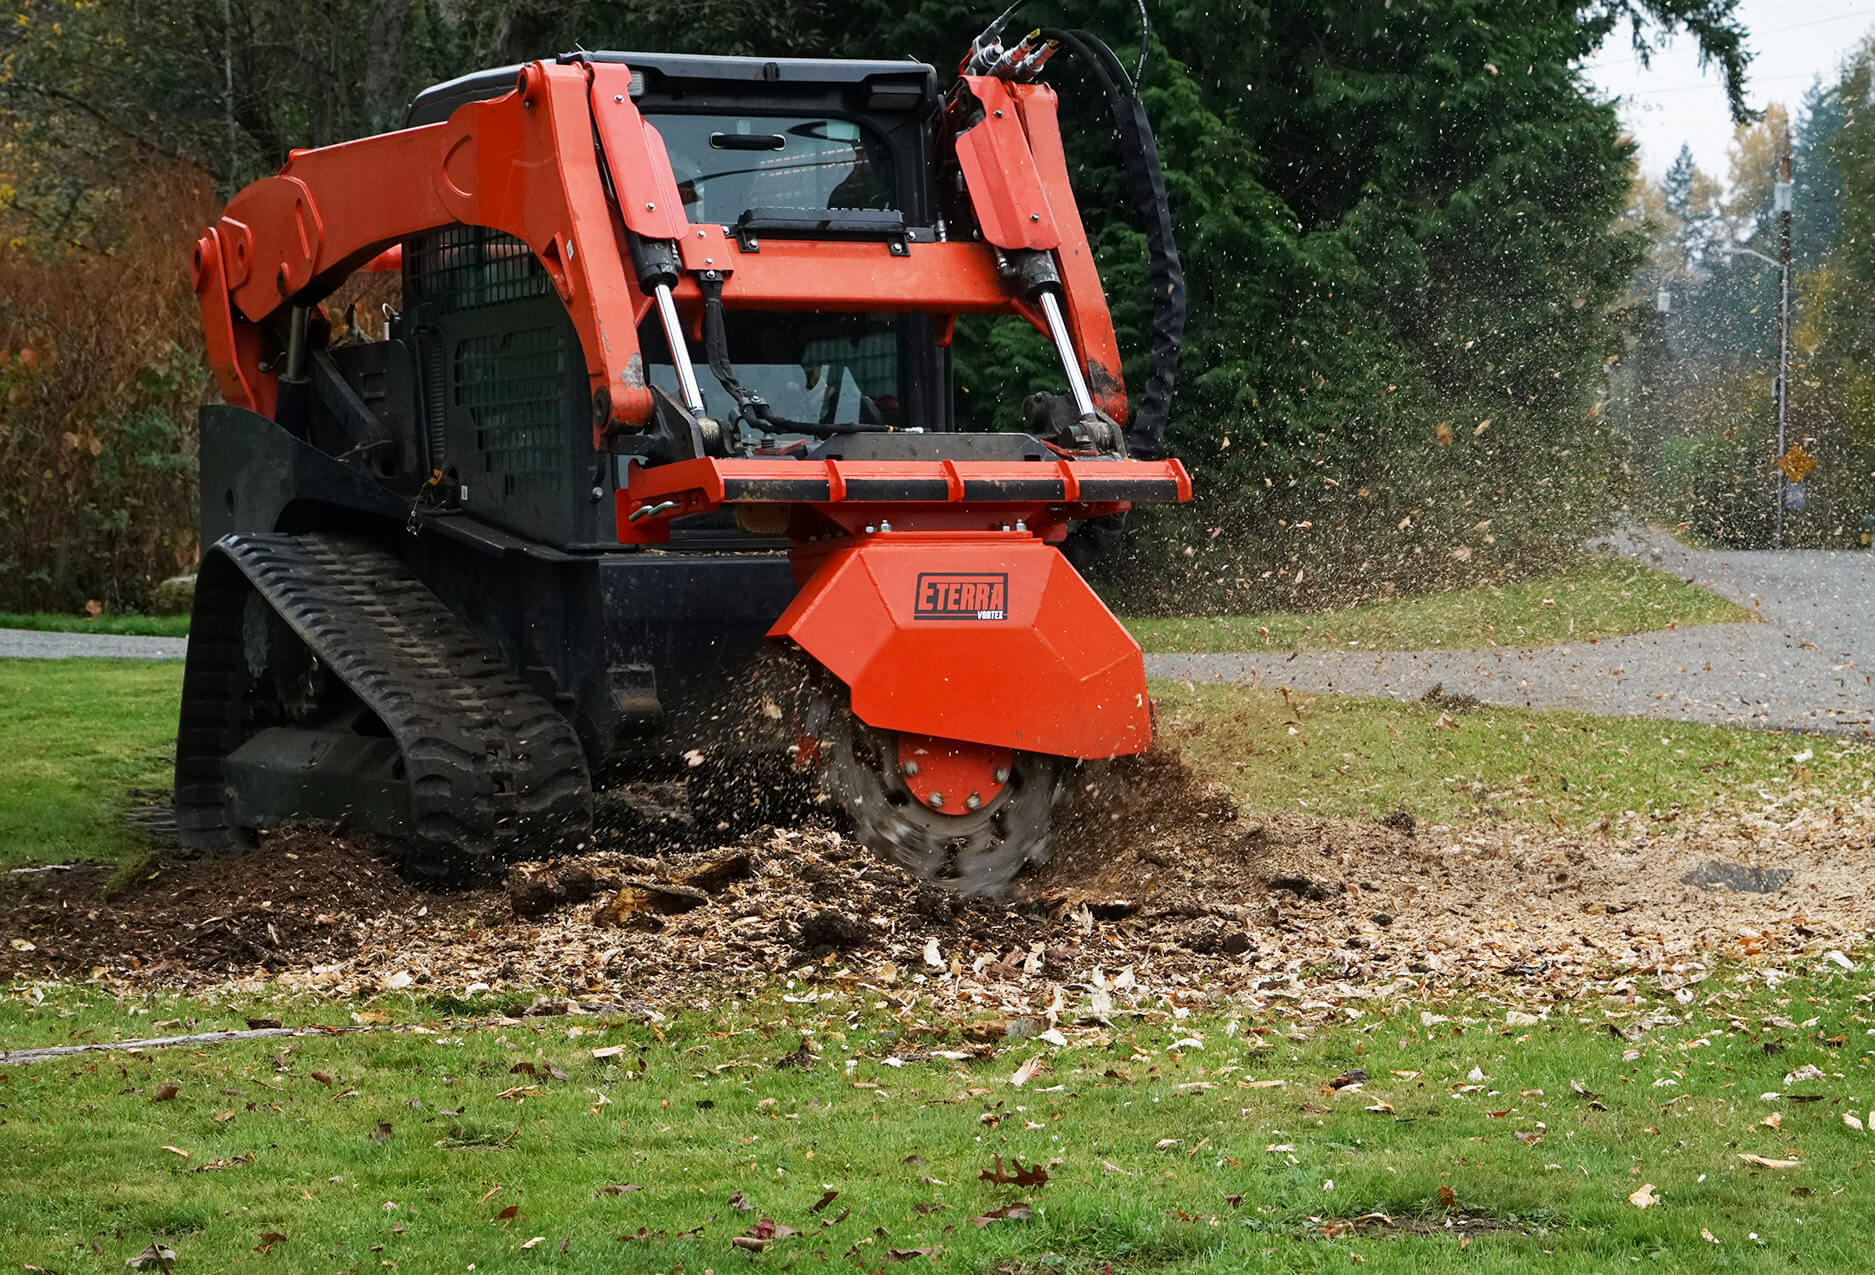 Skid Steer Stump Grinder action grinding stump